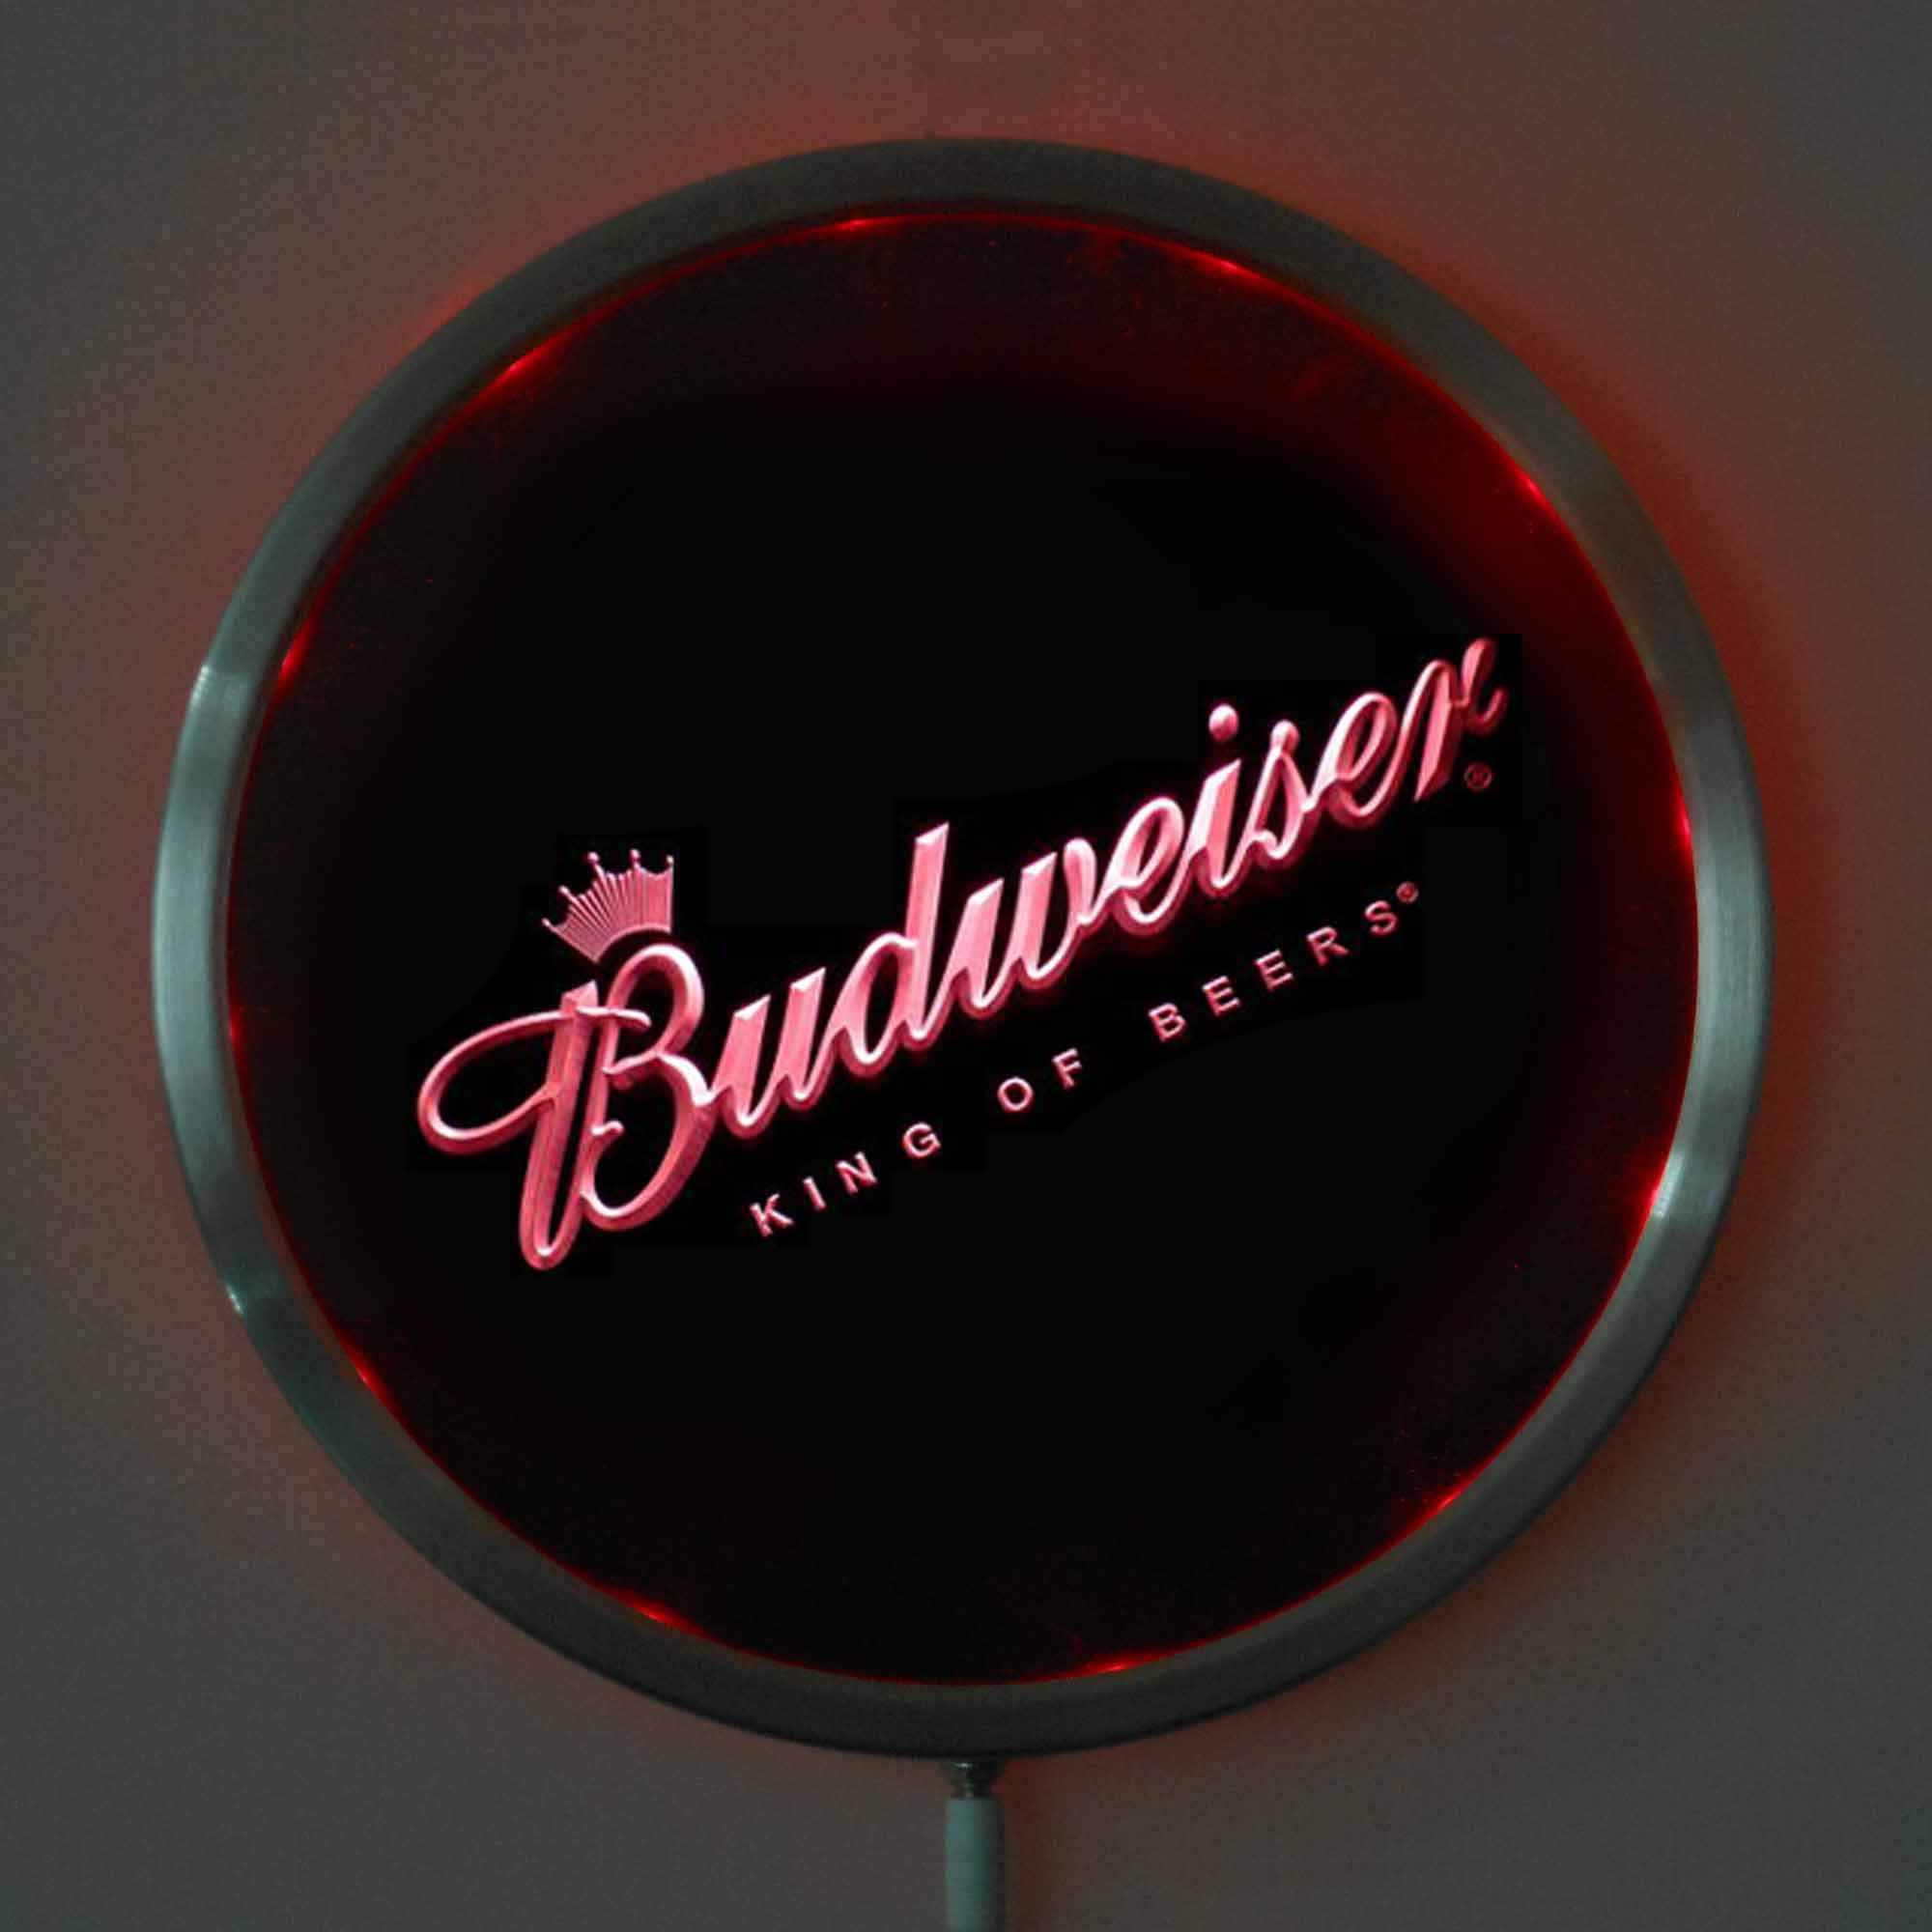 rs-0002 Budweiser Beer LED Neon Round Signs 25cm/ 10 Inch - Bar Sign with RGB Multi-Color Remote Wireless Control Function